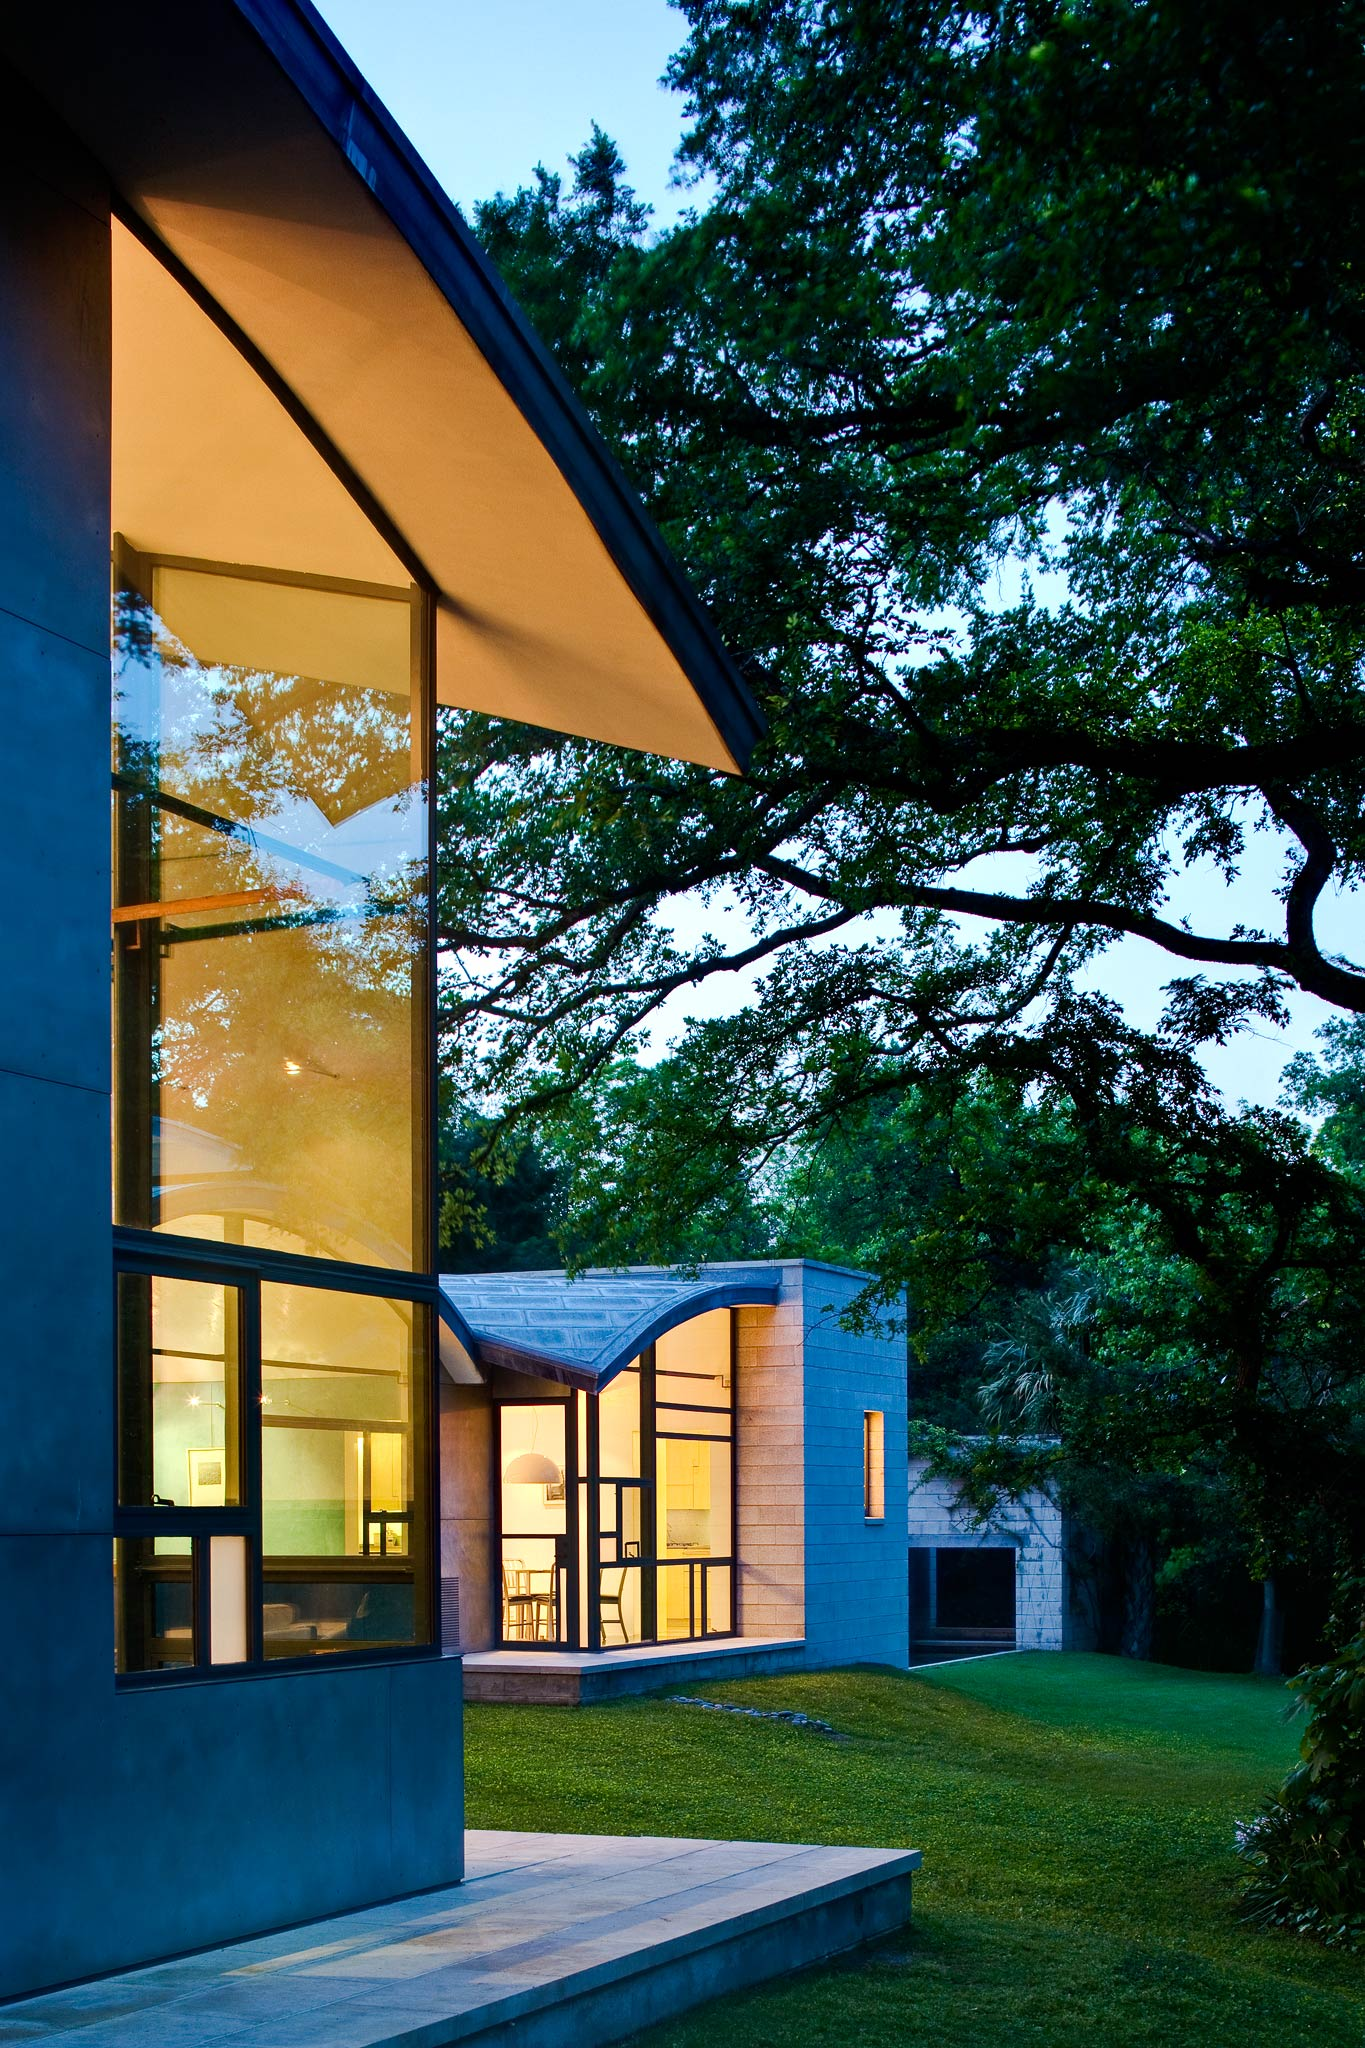 The Stretto House, Dallas, Texas 2010 by Sean Gallagher Architecture and Interior photographer